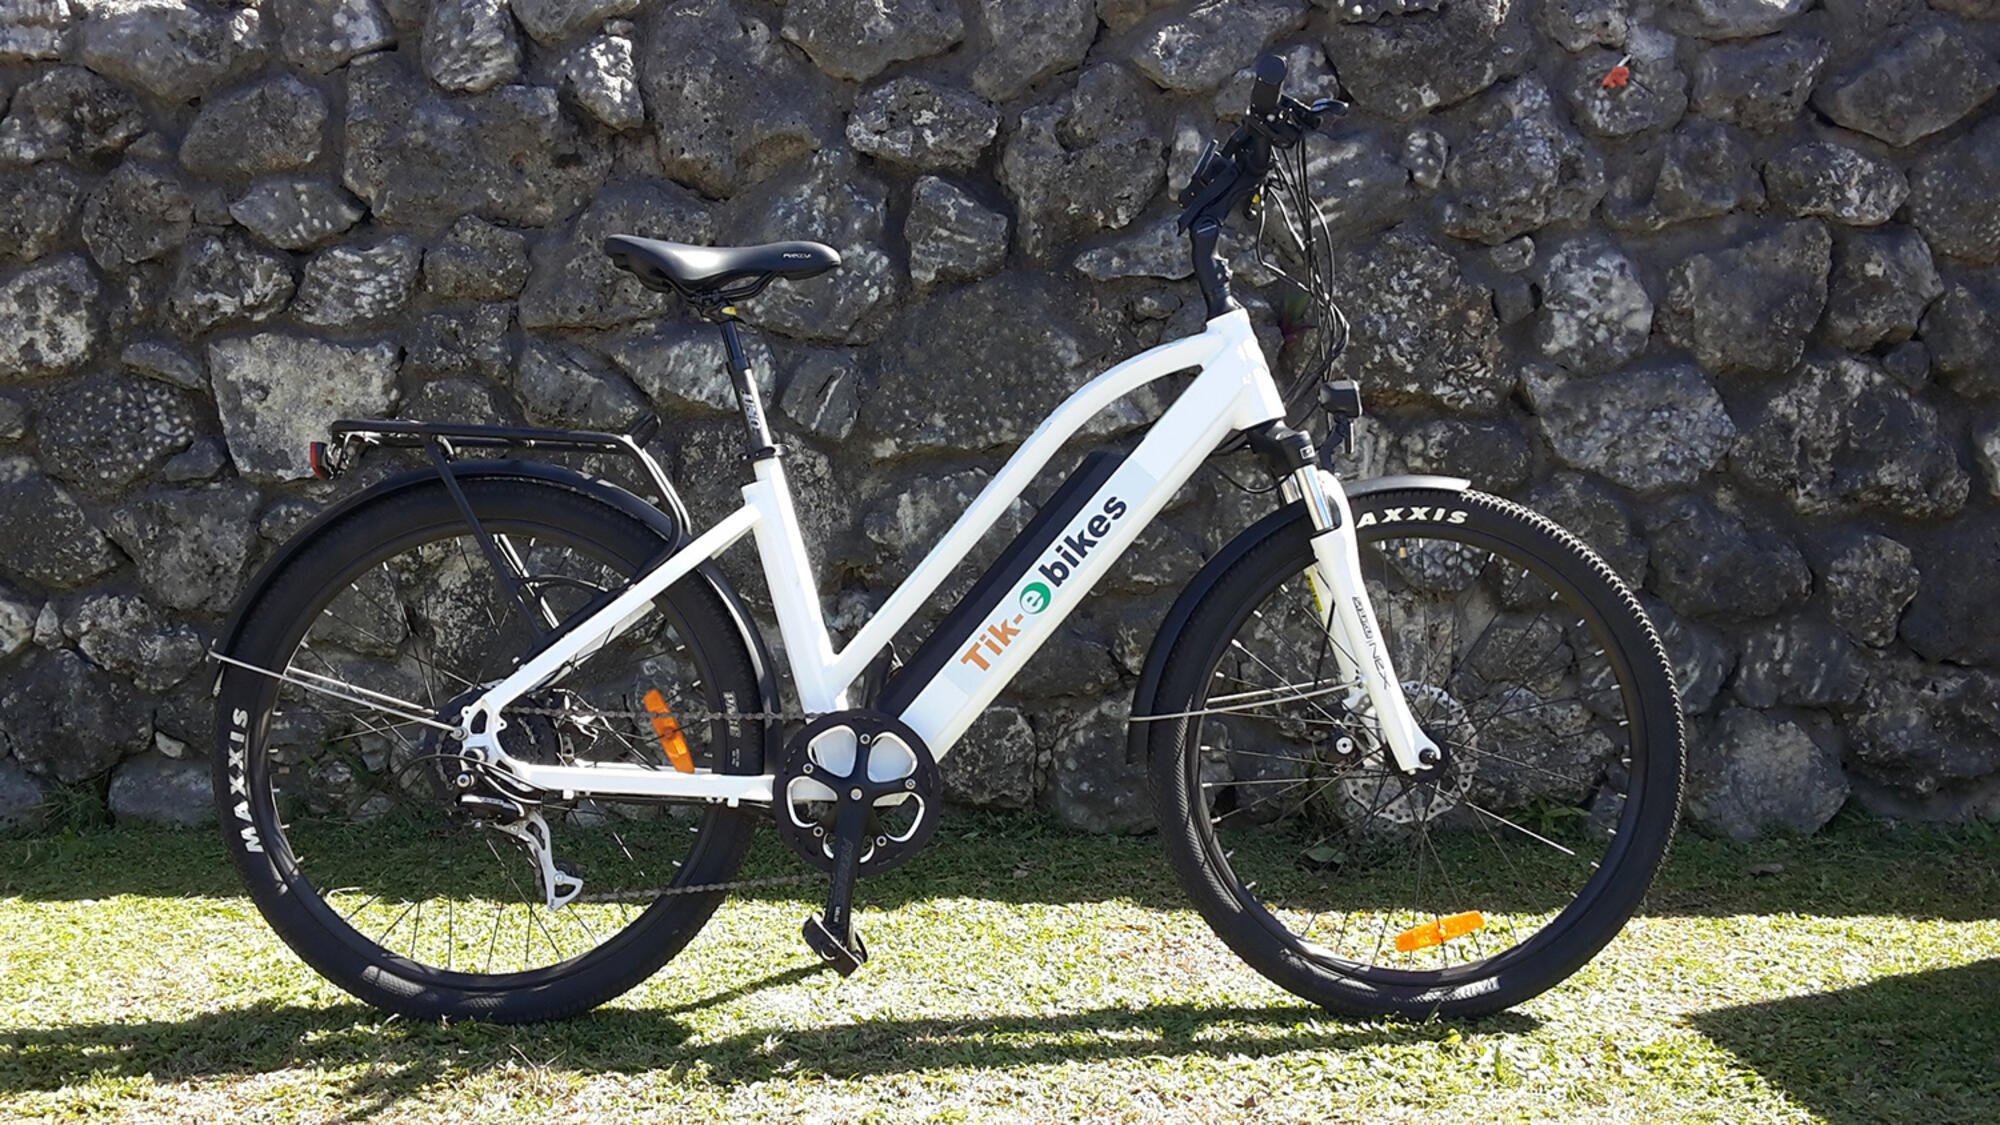 Hire e-Bikes in Rarotonga with Tik-e Tour